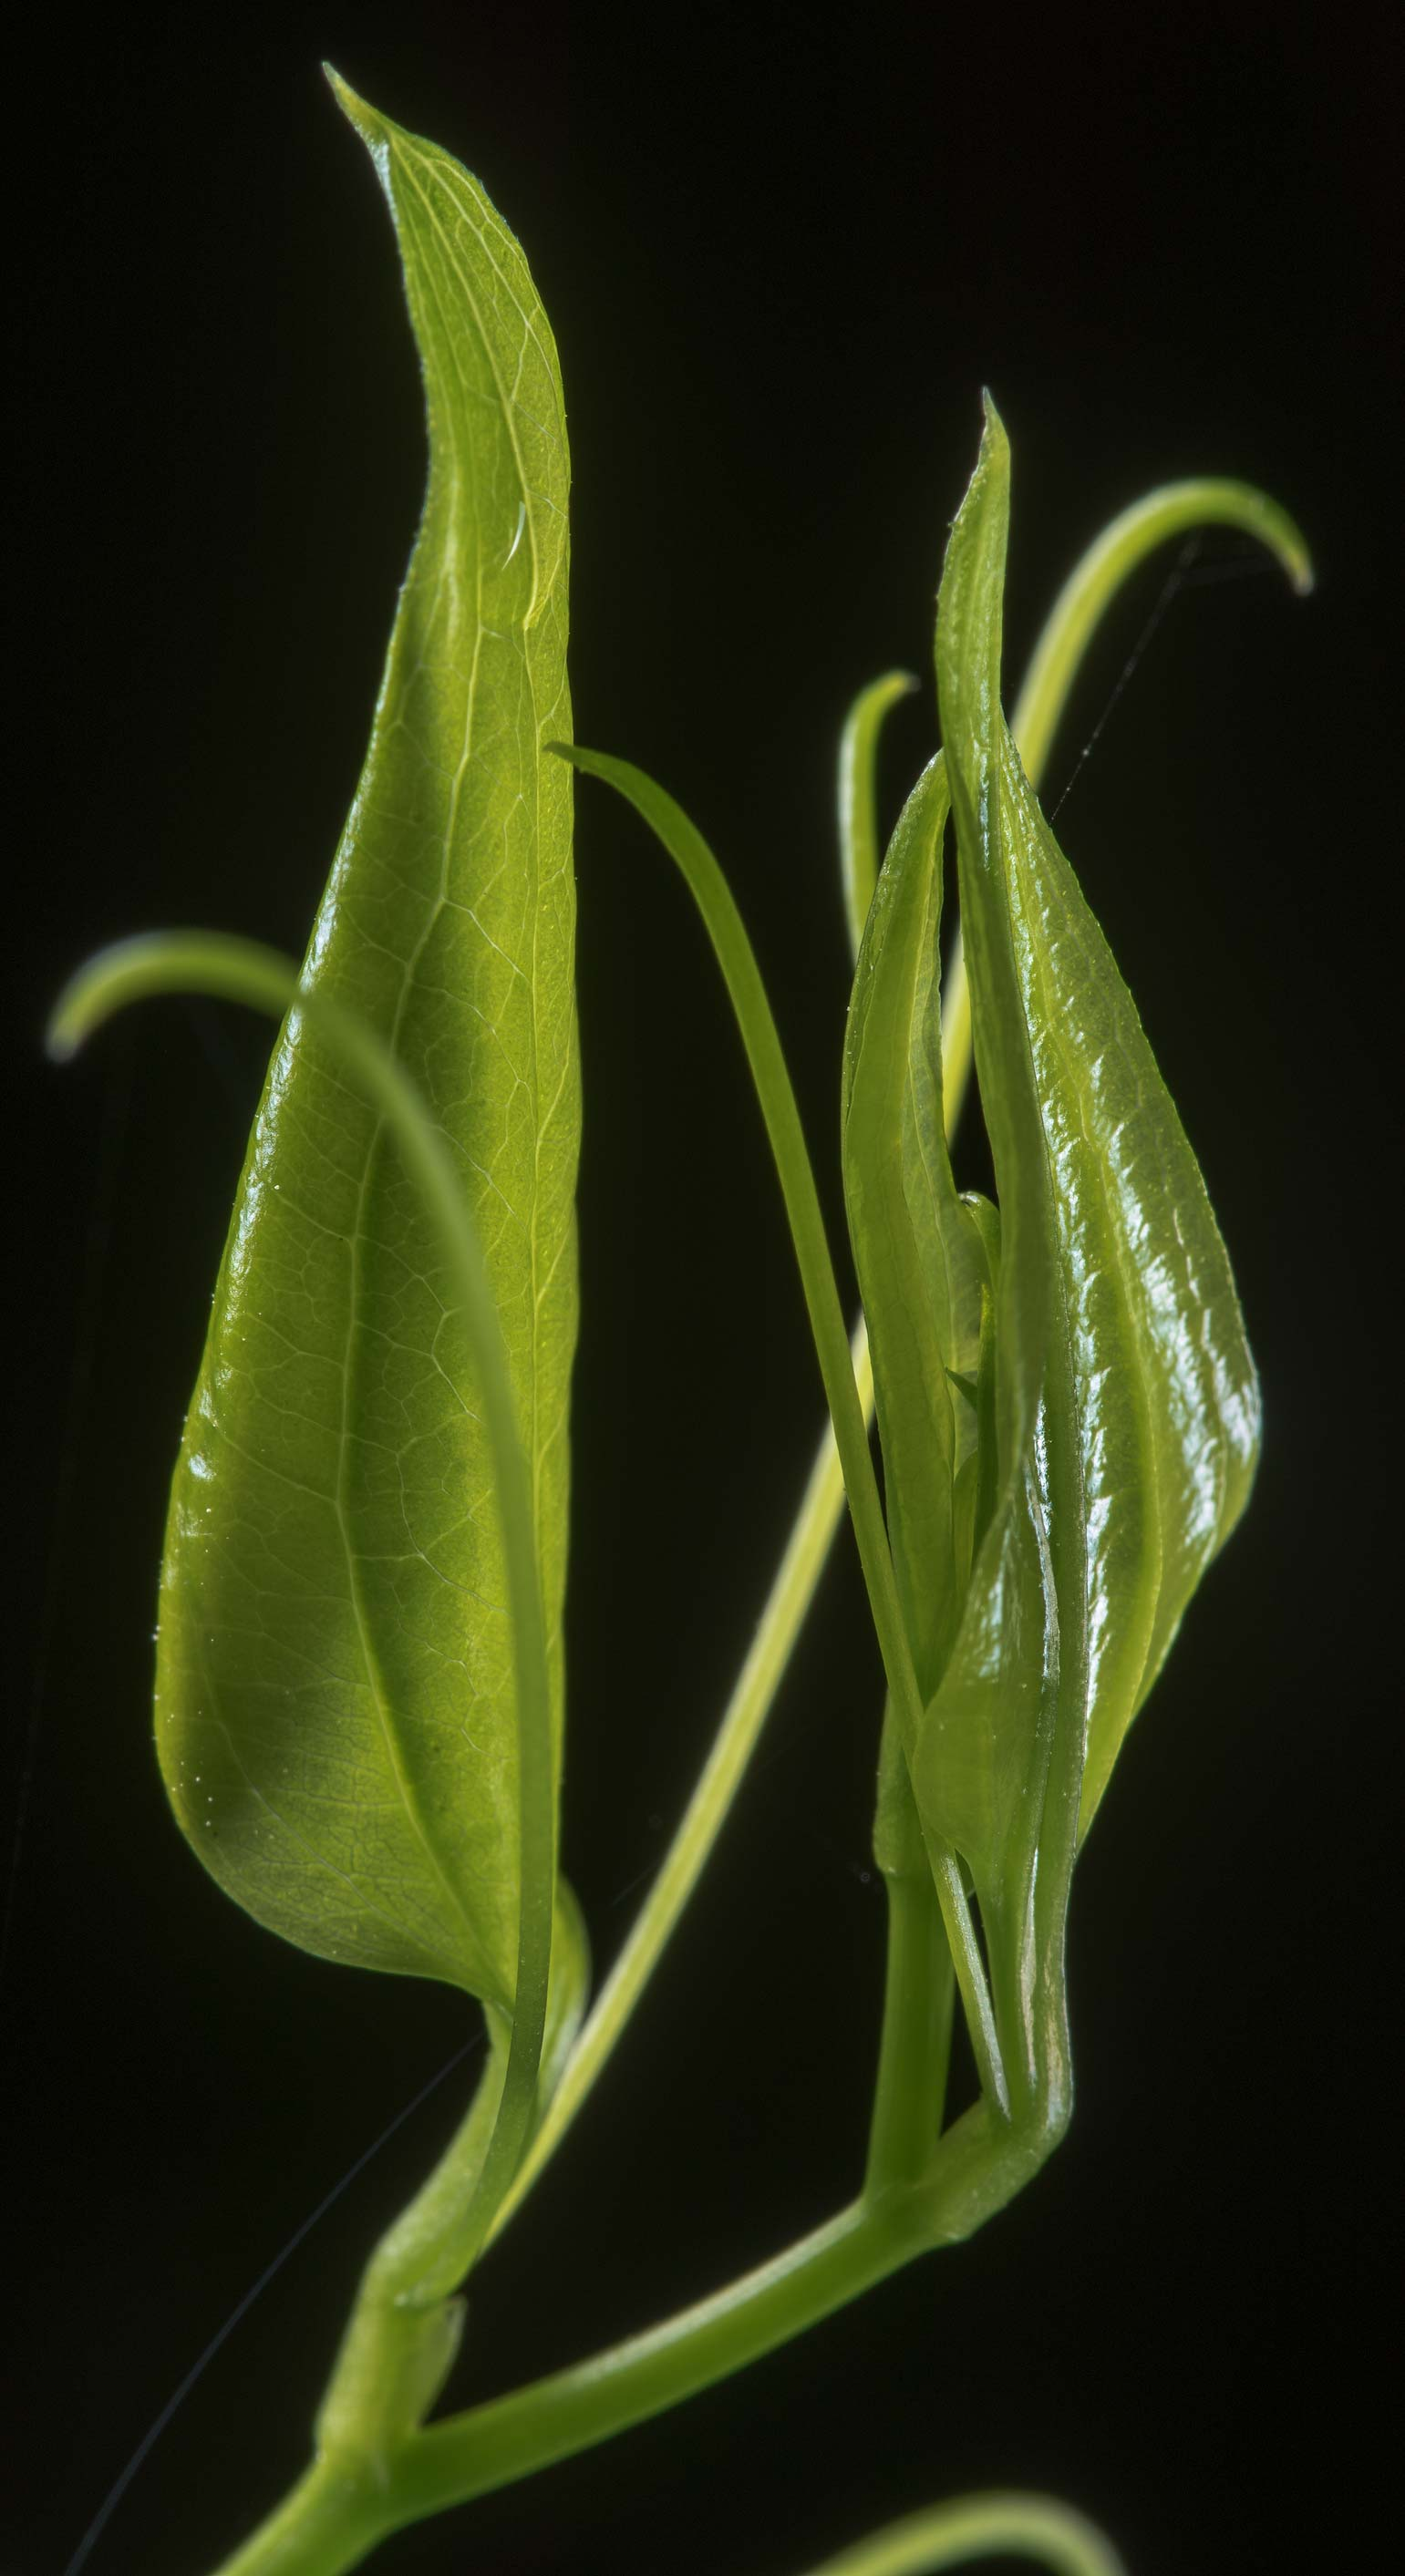 Shoot of greenbrier (Smilax) in Lick Creek Park. College Station, Texas